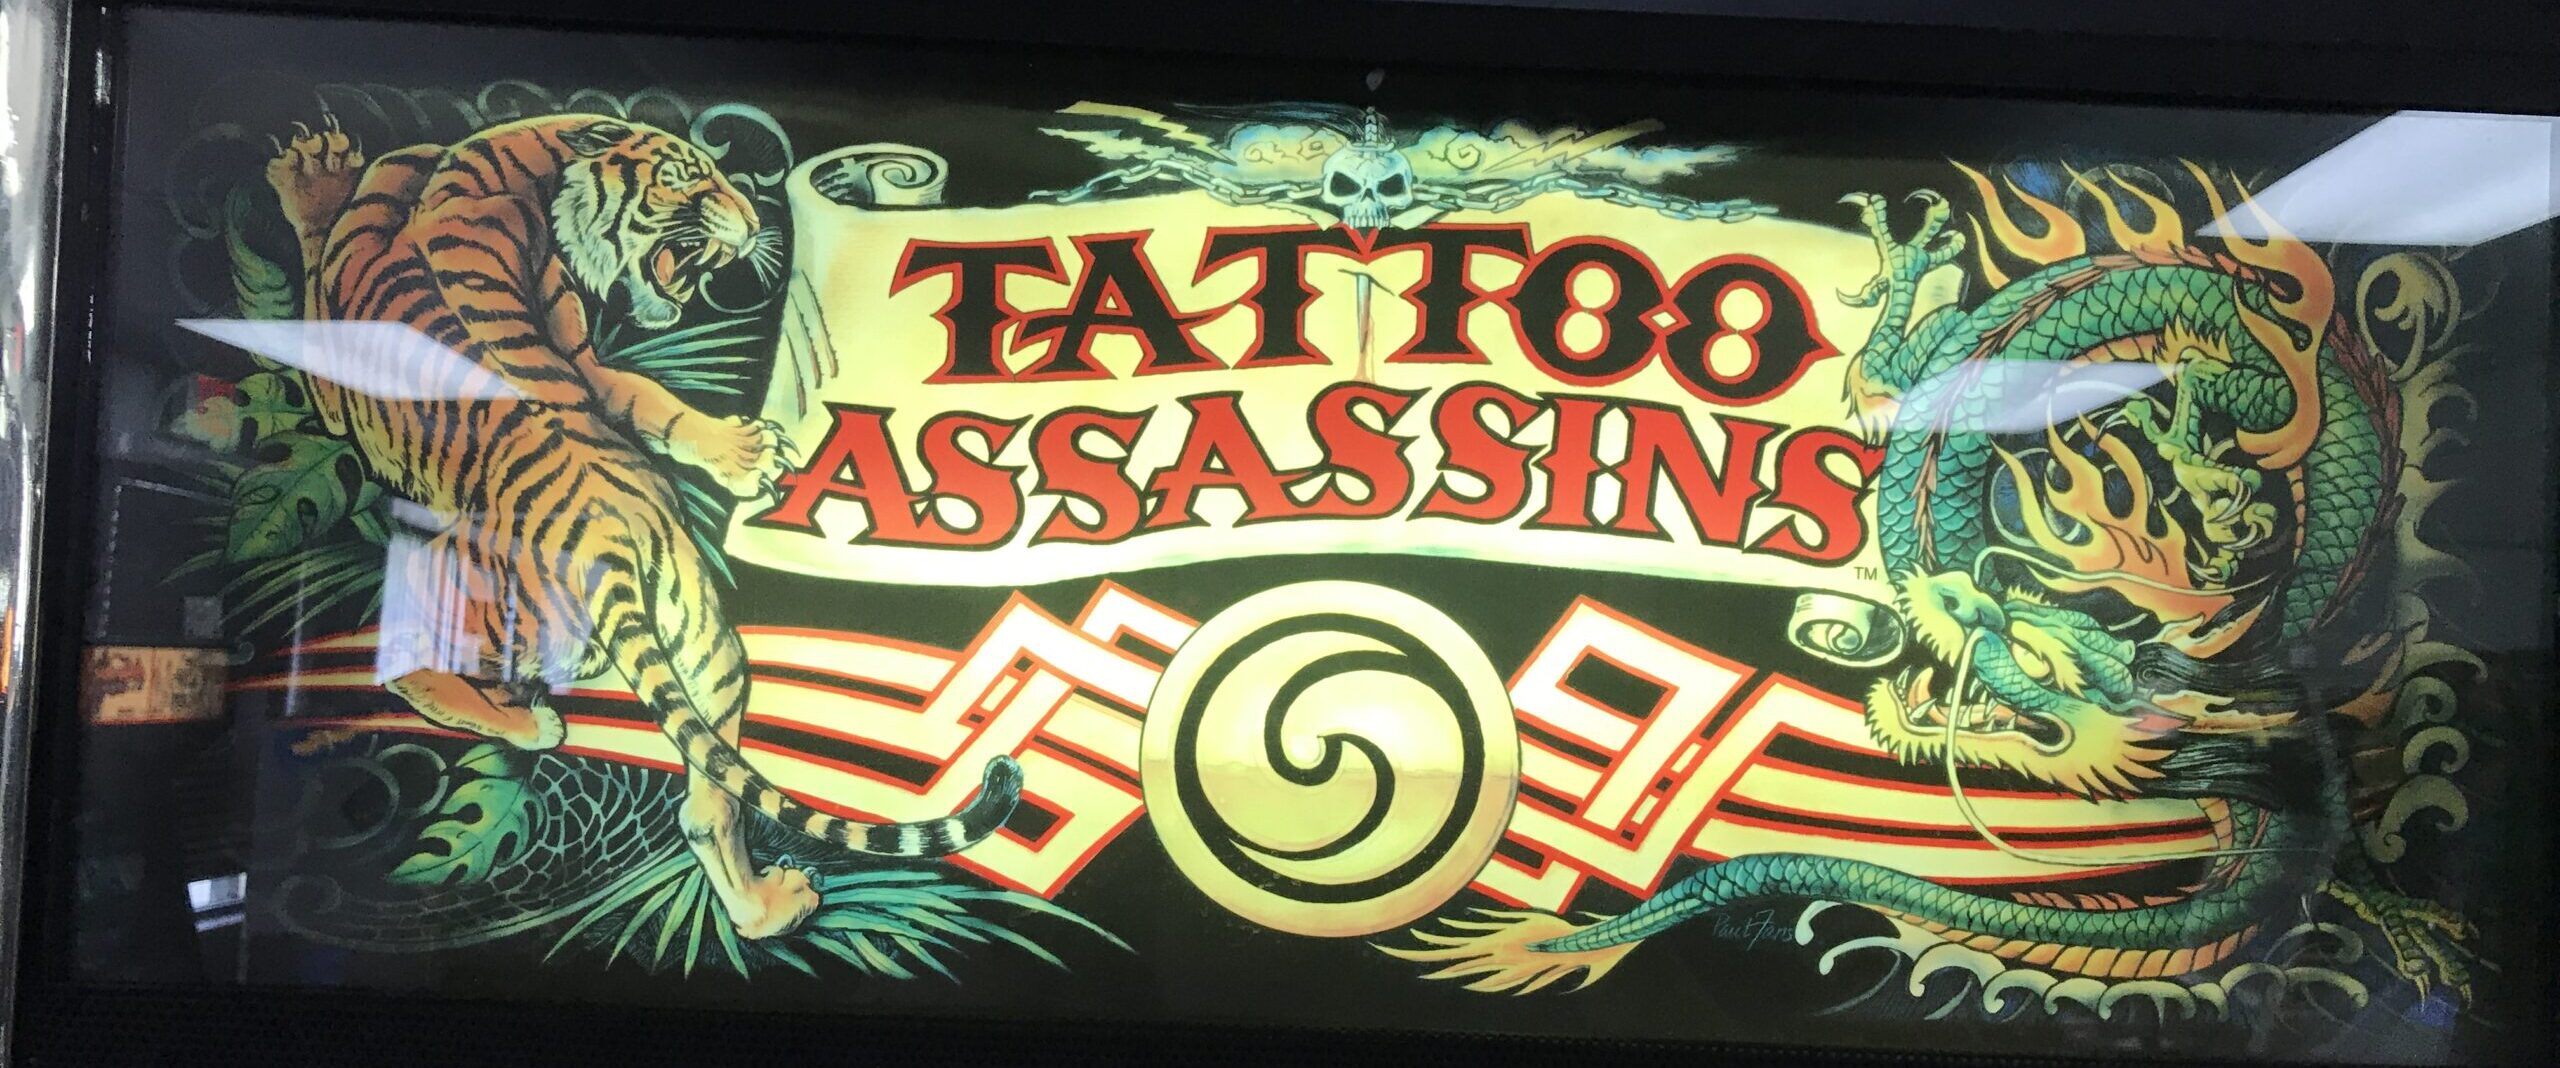 A World of Games: Tattoo Assassins